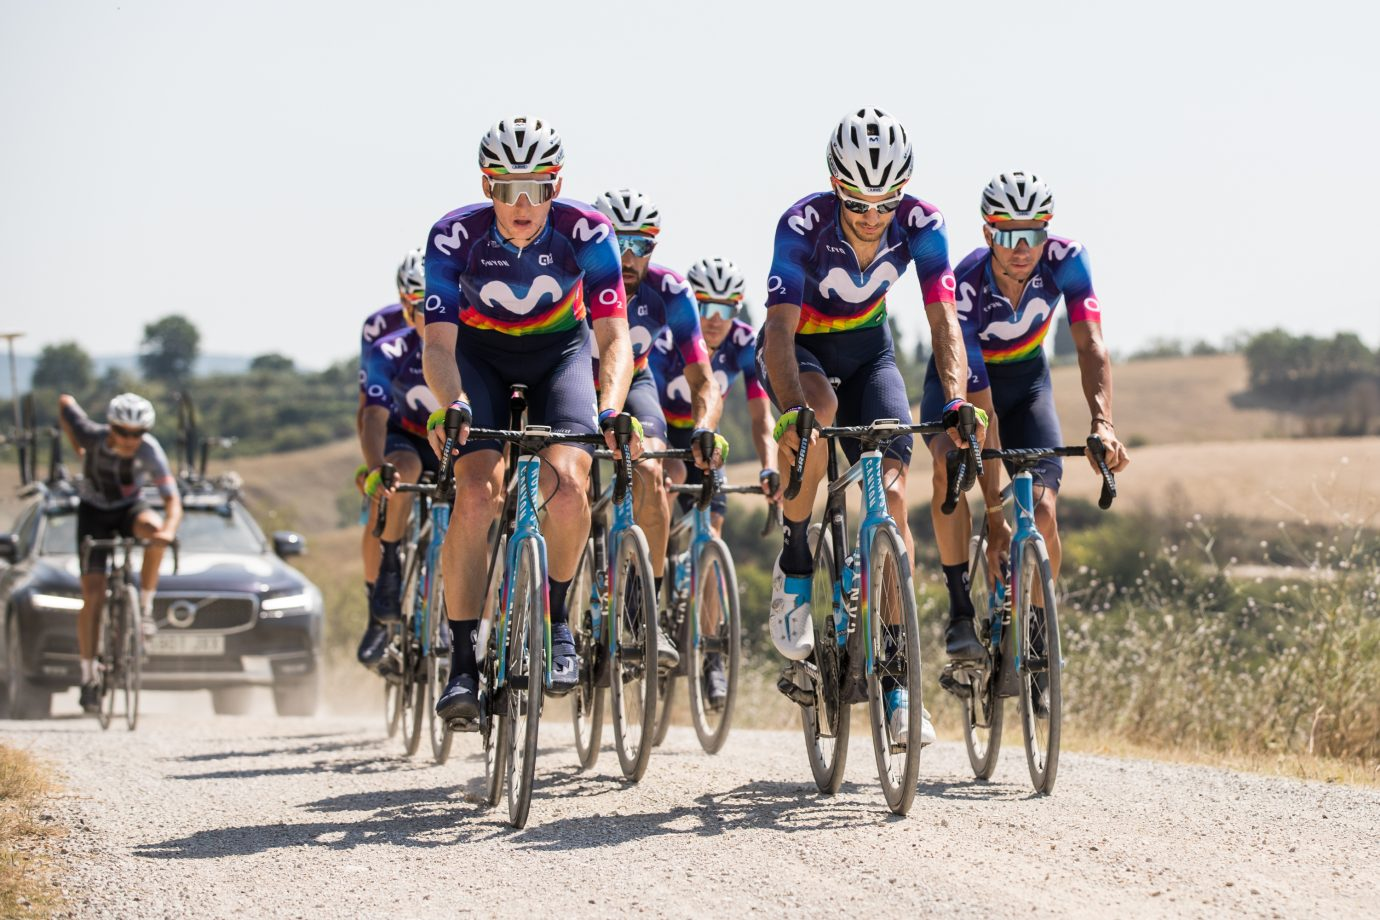 Imagen de la noticia 'All details on the Movistar Team's Charity Jersey for Strade Bianche'